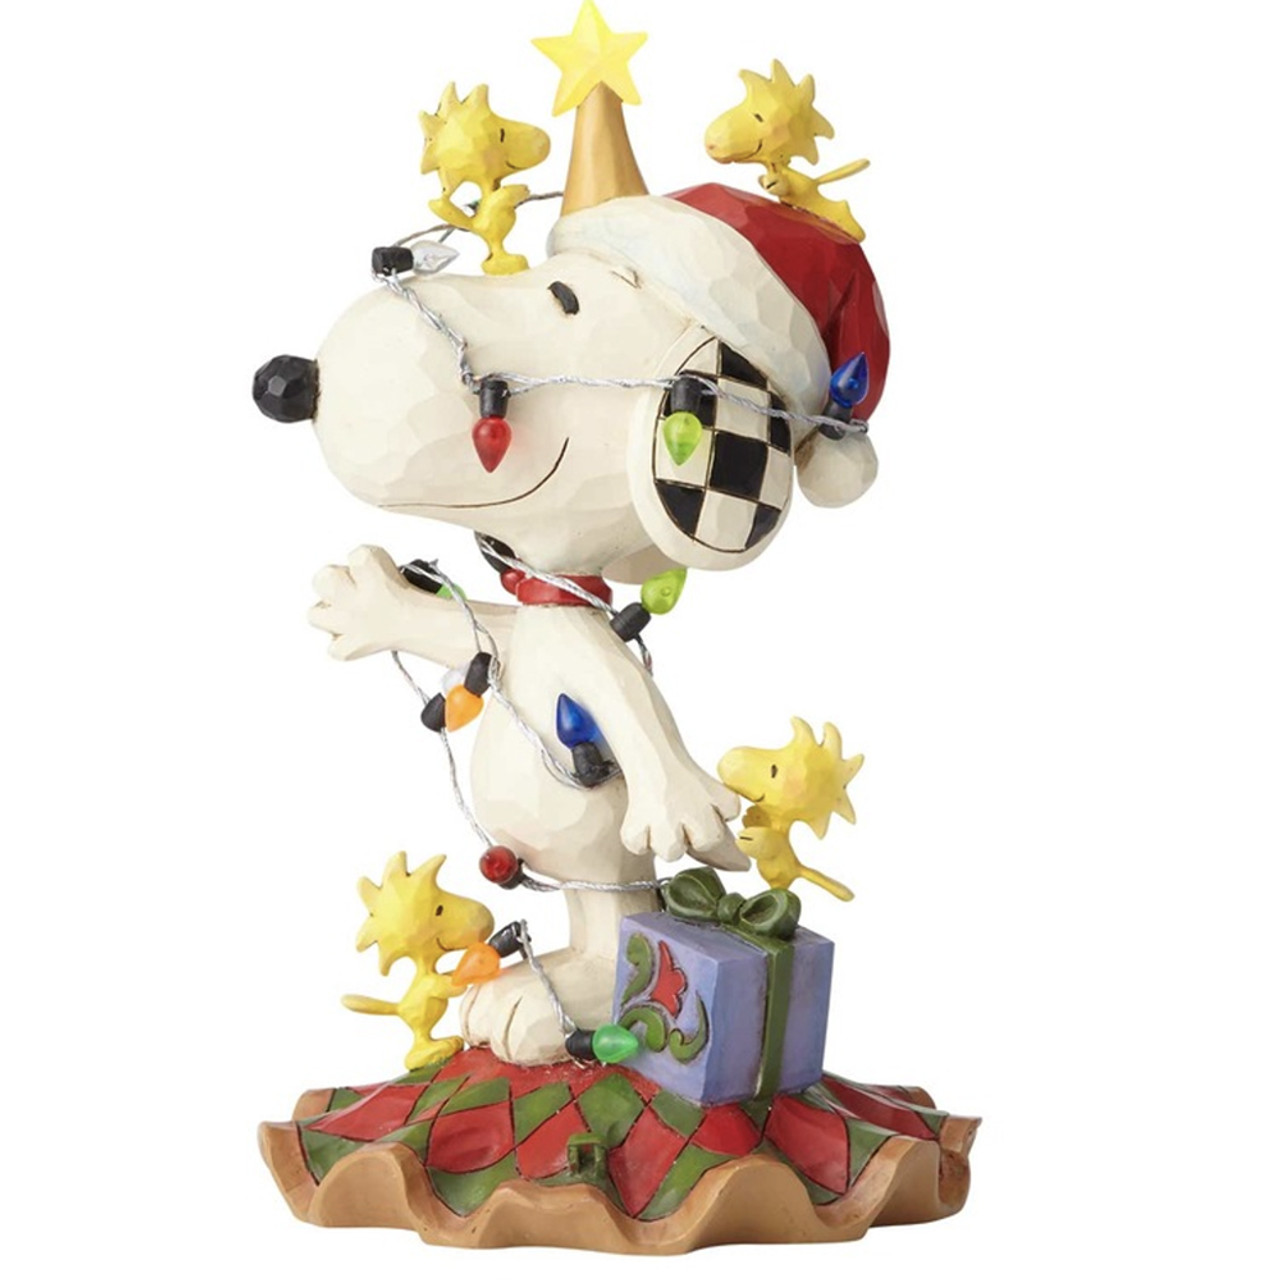 Snoopy And Woodstock Christmas Images.Jim Shore Peanuts Collection Snoopy And Woodstock 16 5cm